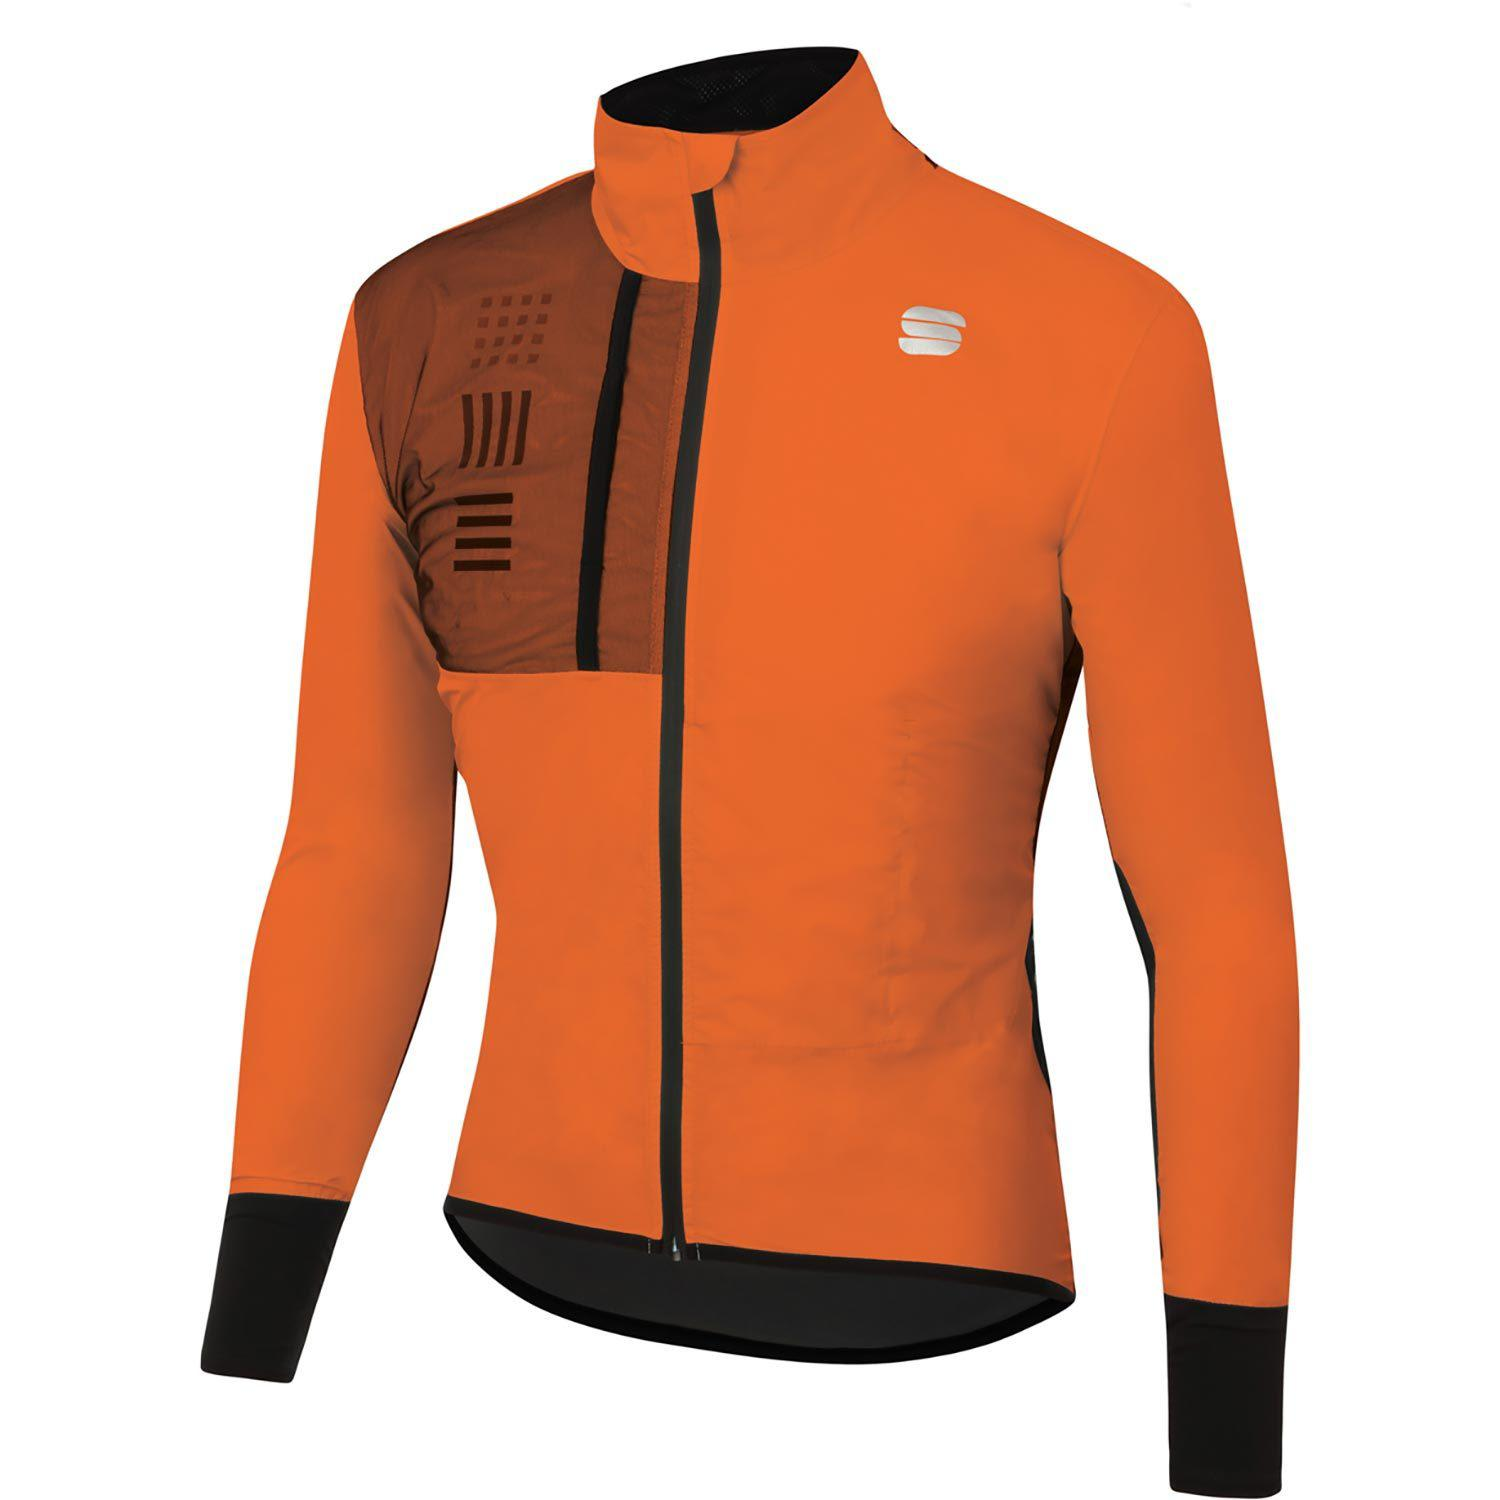 Sportful-Sportful DR Jacket-Orange SDR-S-SF205058502-saddleback-elite-performance-cycling